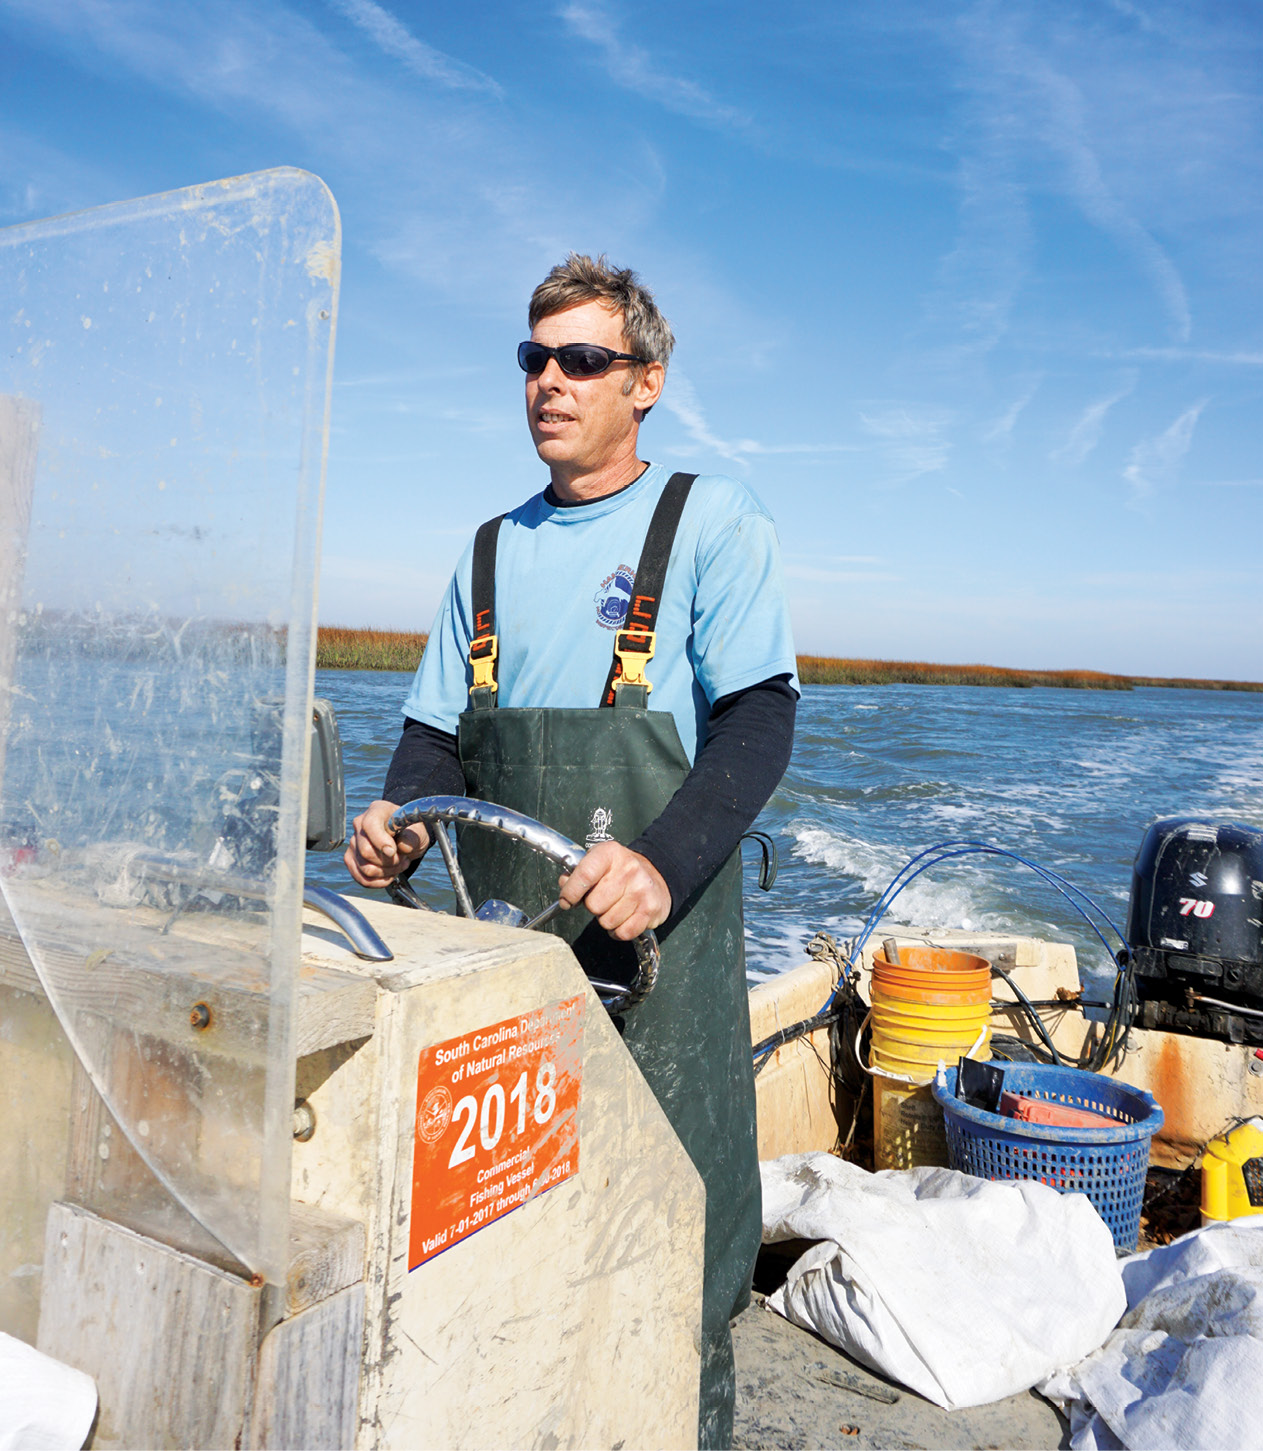 Jeff Spahr and his harvesting team could easily pick 40 bushels of oysters per day, but they typically stop at 10 to 20 bushels in order to keep their beds healthy.